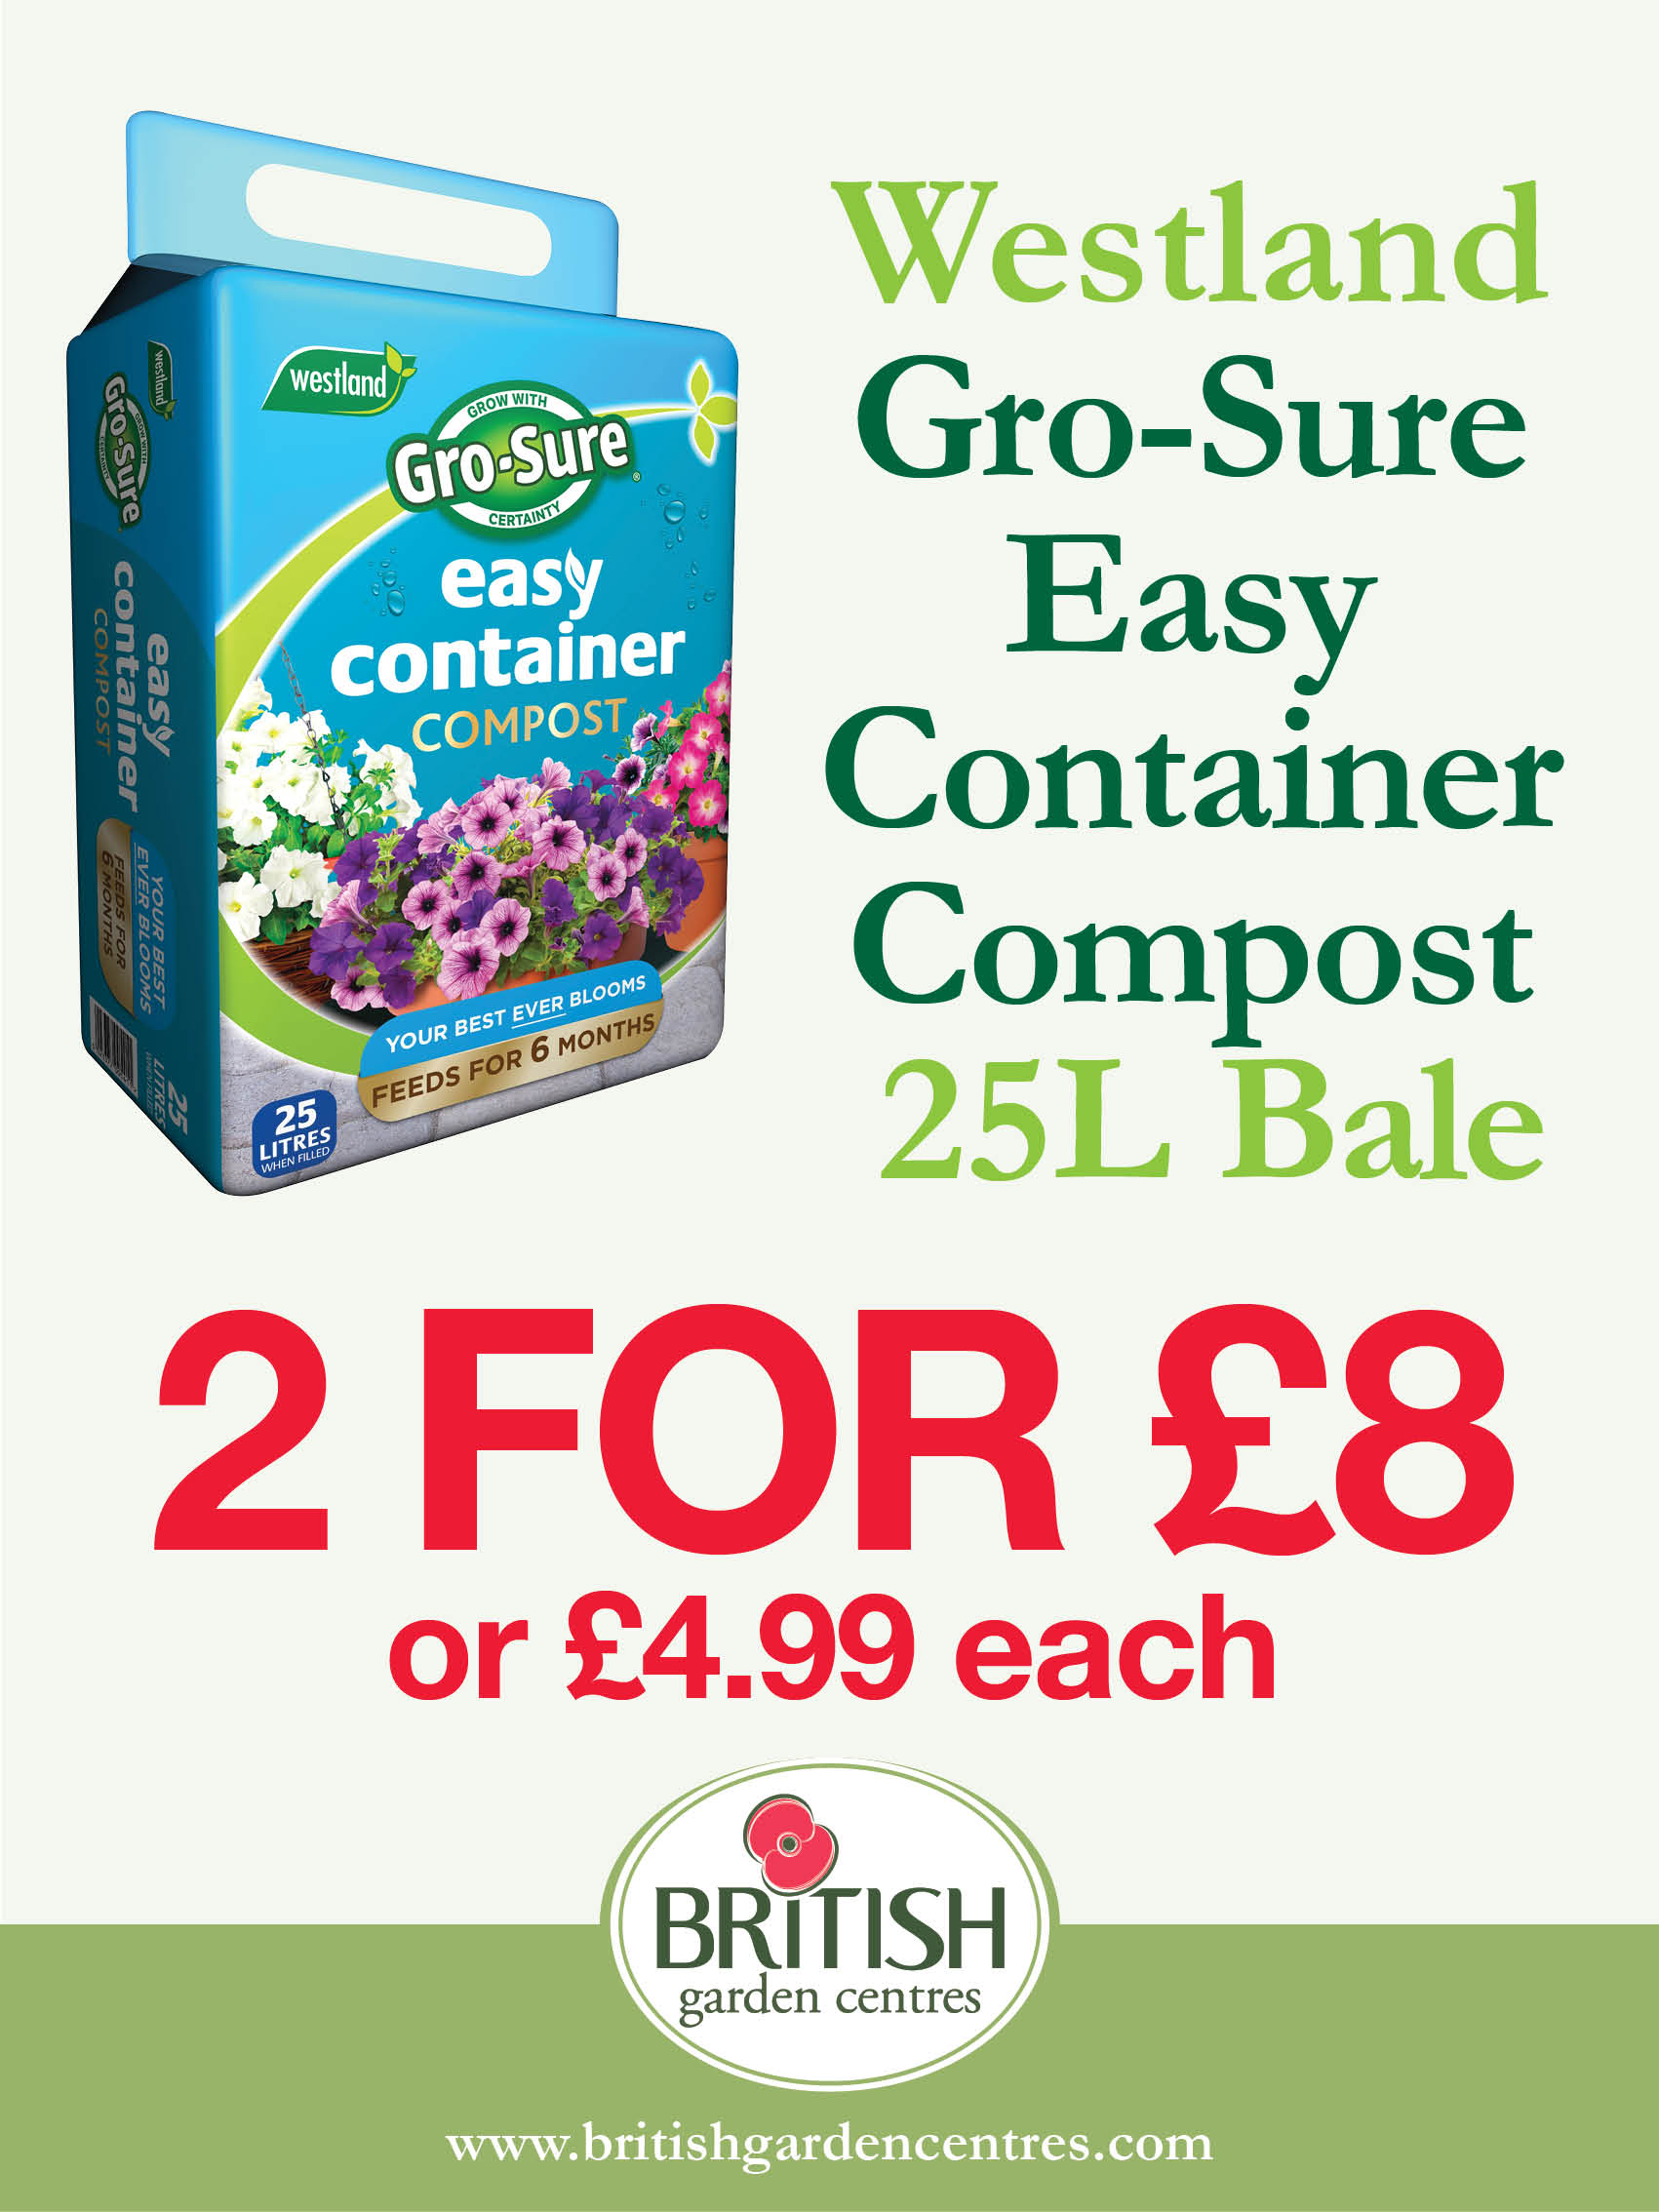 Gro-Sure Easy Containe Compost 25L